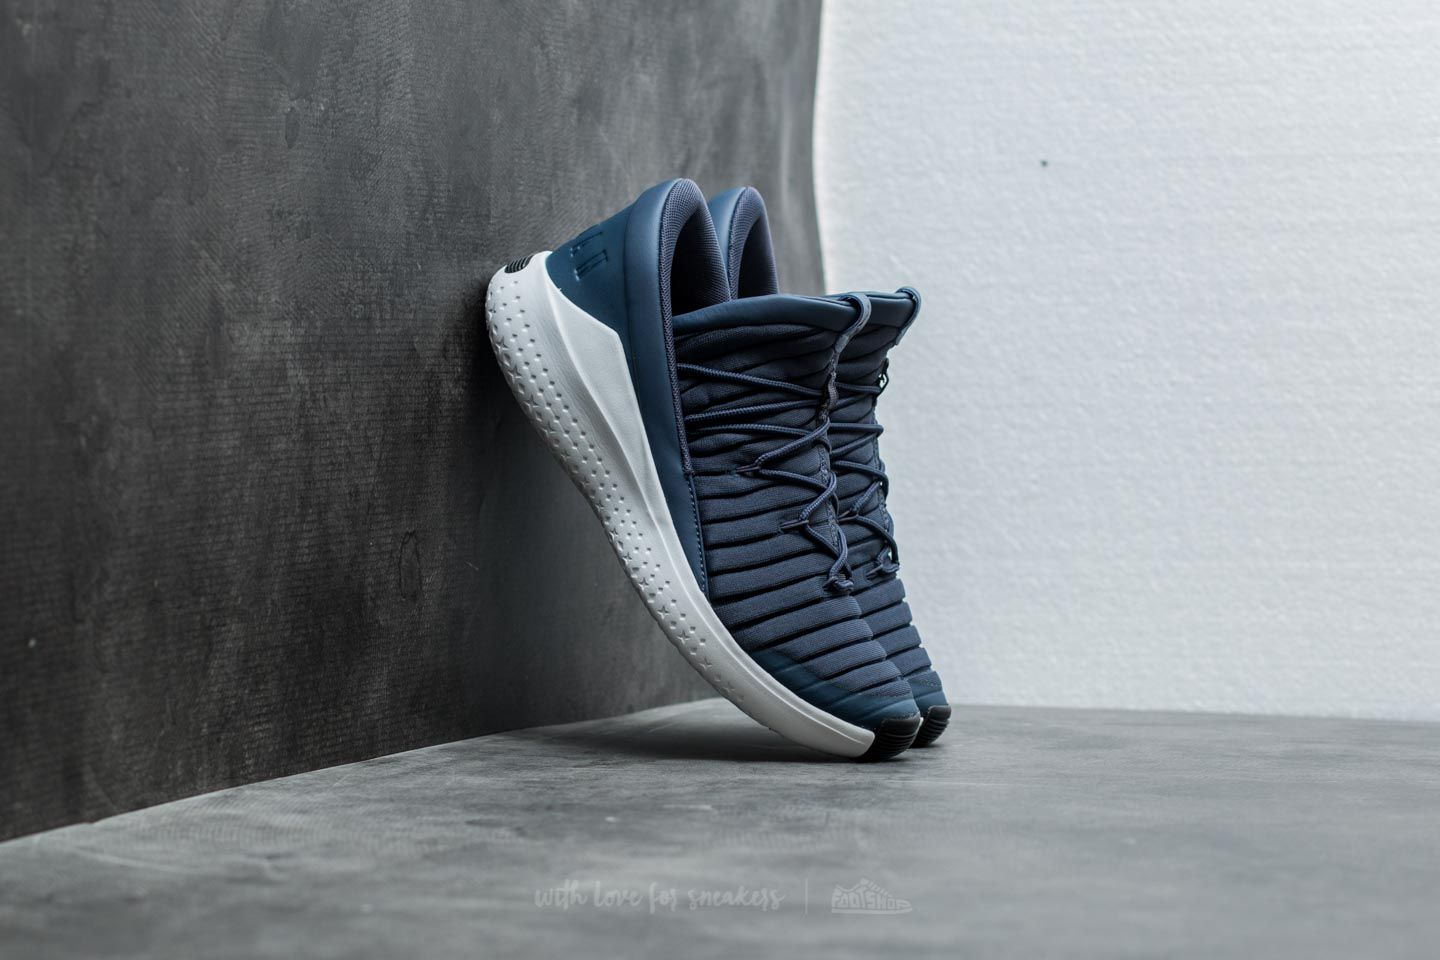 f38b1af33e9bd1 Jordan Flight Luxe Thunder Blue  Black